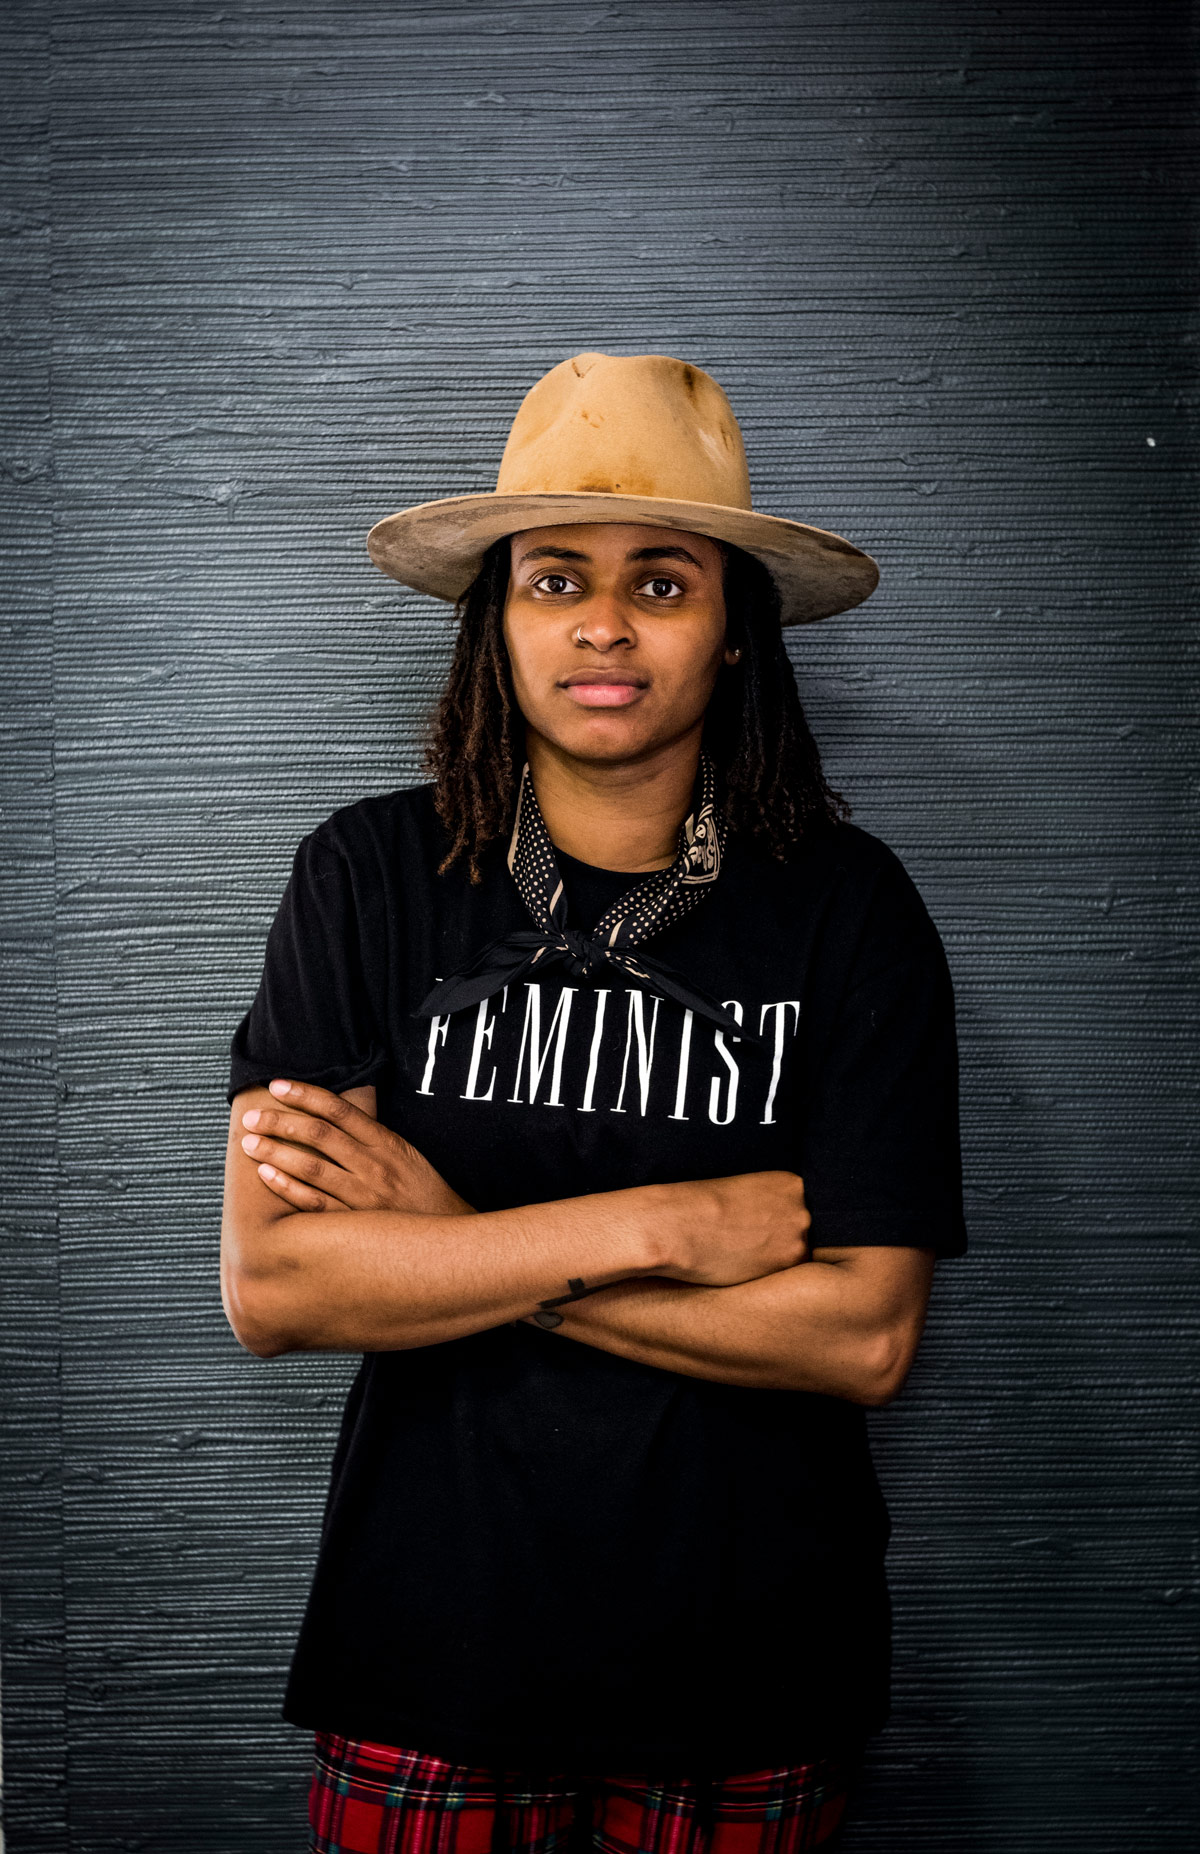 Picture of hat-maker Markia Herron